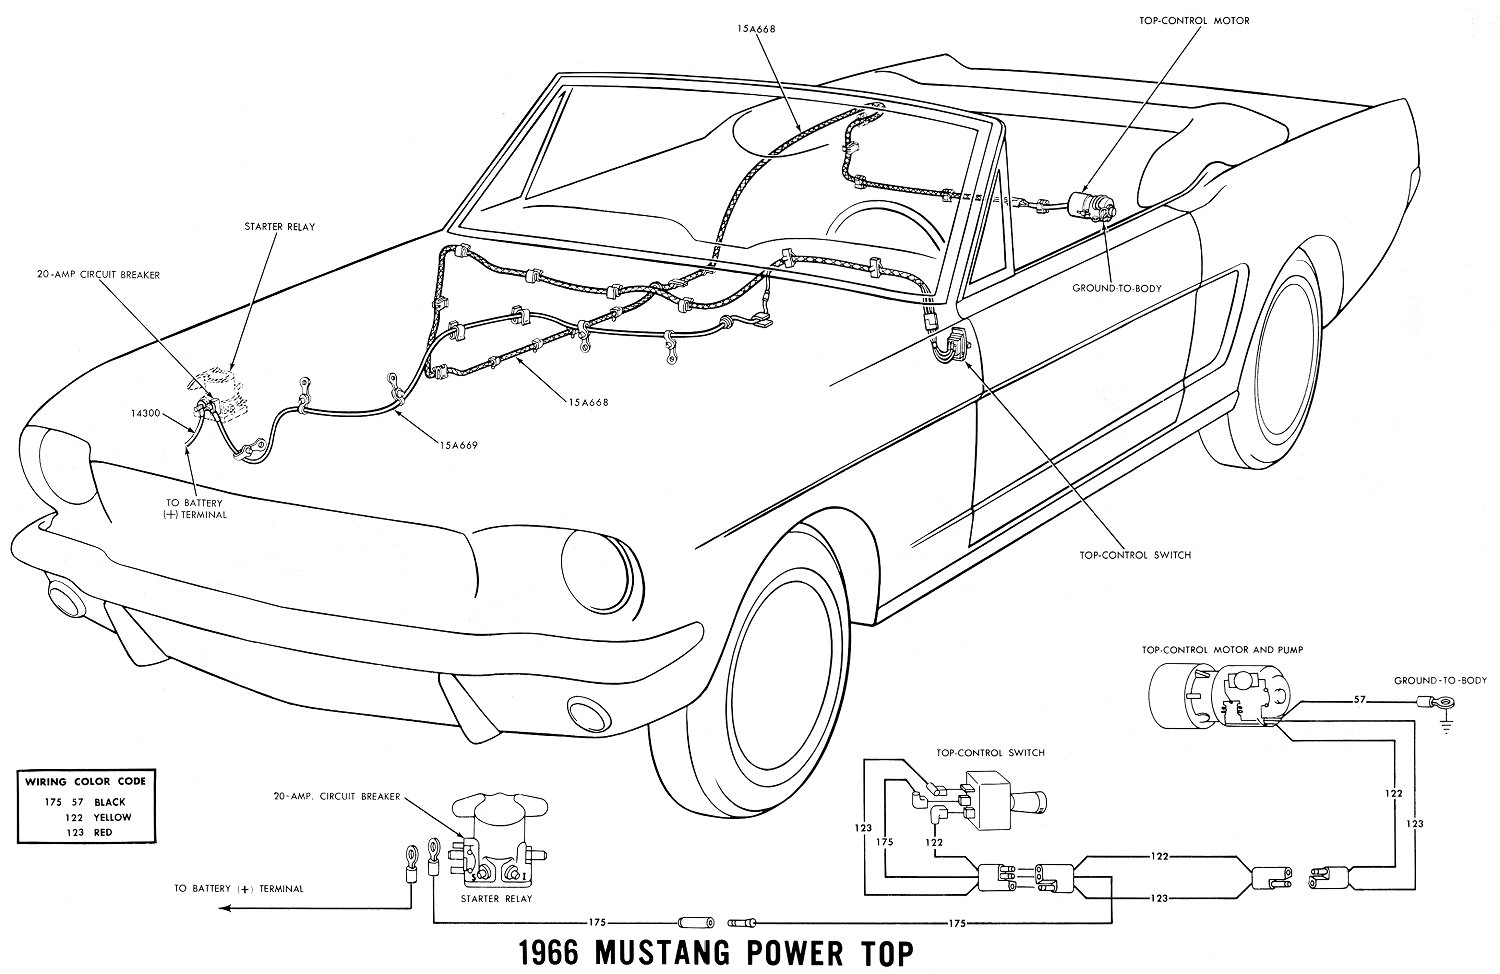 66 cadillac wiring diagram schematic 66 mustang wiring diagram schematic help - 1966 convertible top switch not working - ford ...